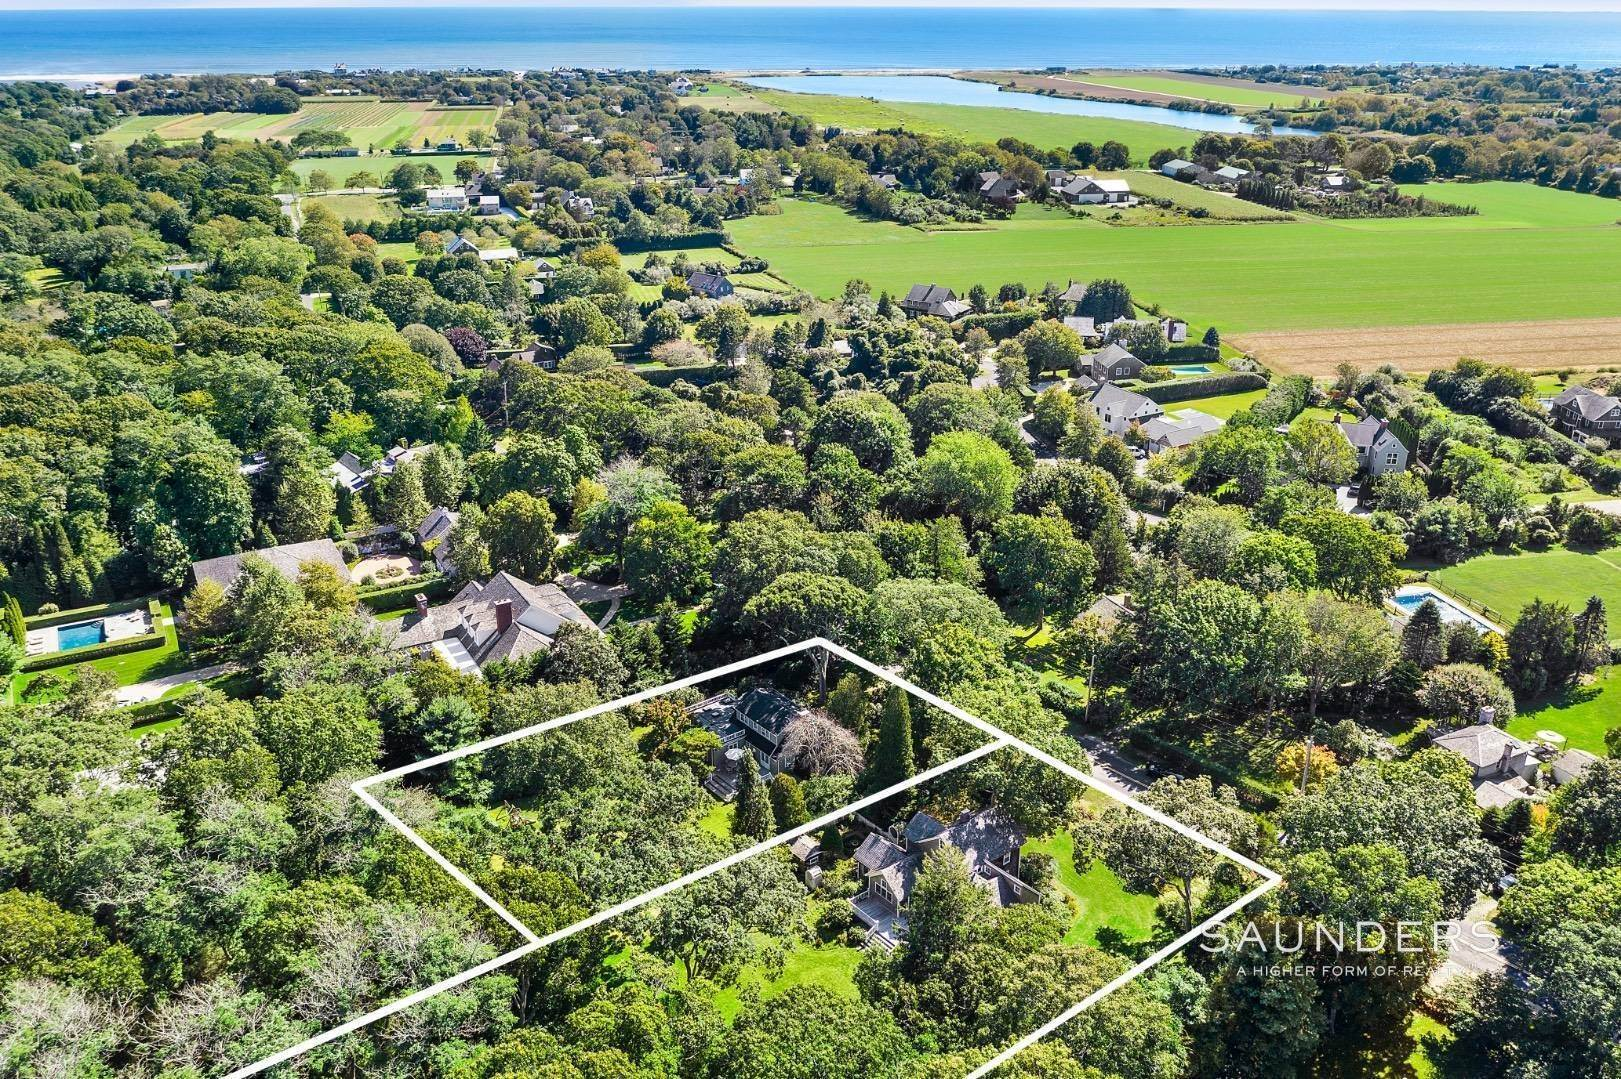 Single Family Homes for Sale at Sayres Path 3 Acre Opportunity 129 & 133 Sayres Path, Wainscott, East Hampton Town, NY 11975